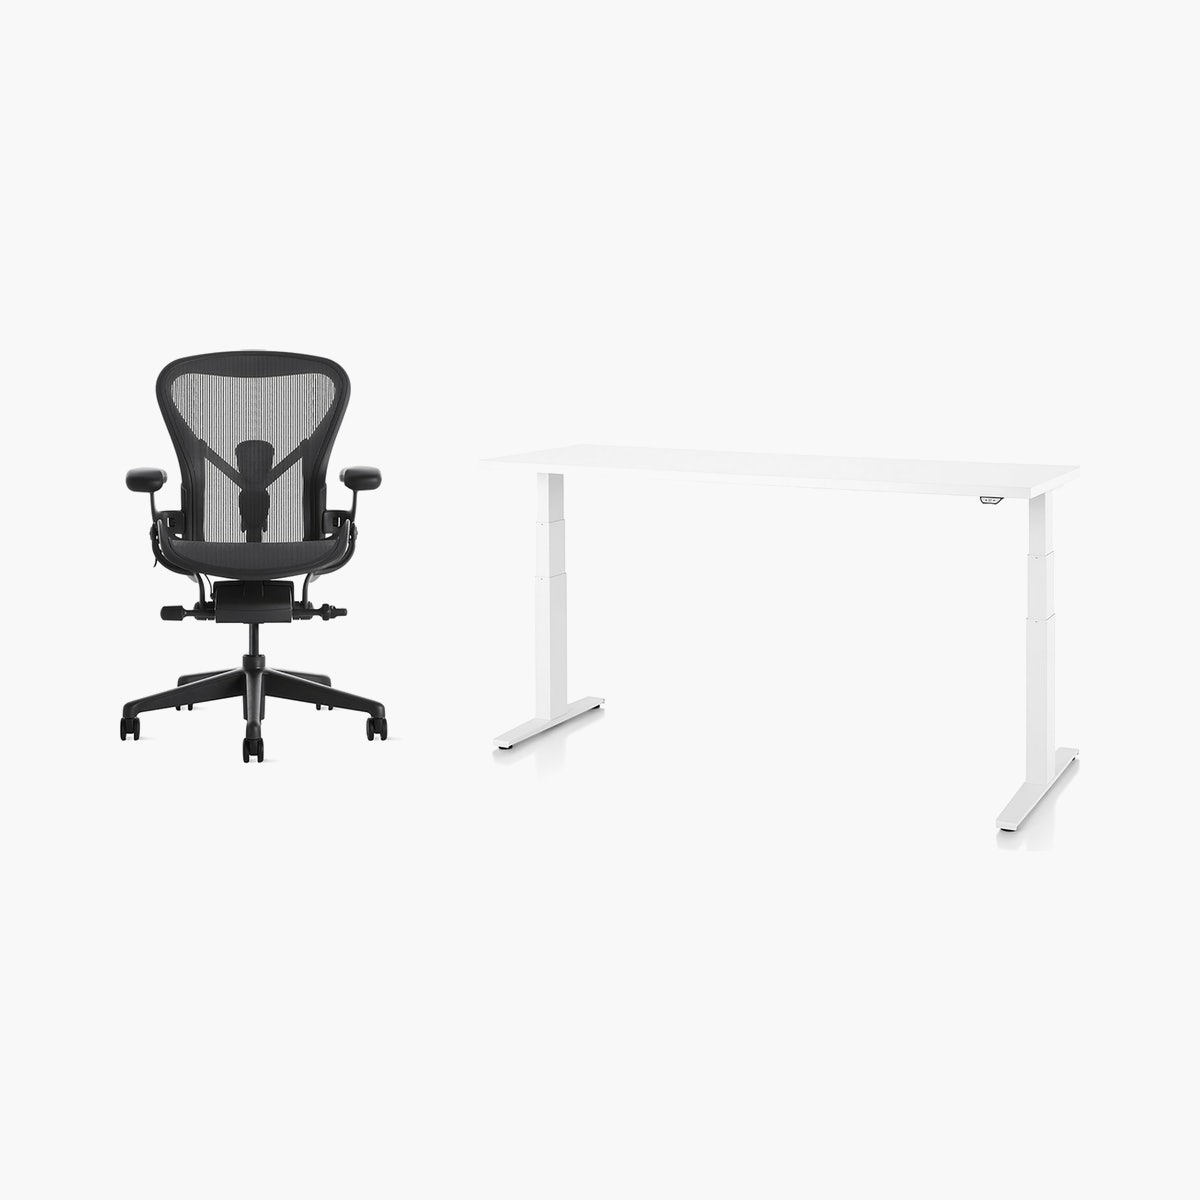 Aeron Chair / Motia Desk Office Bundle